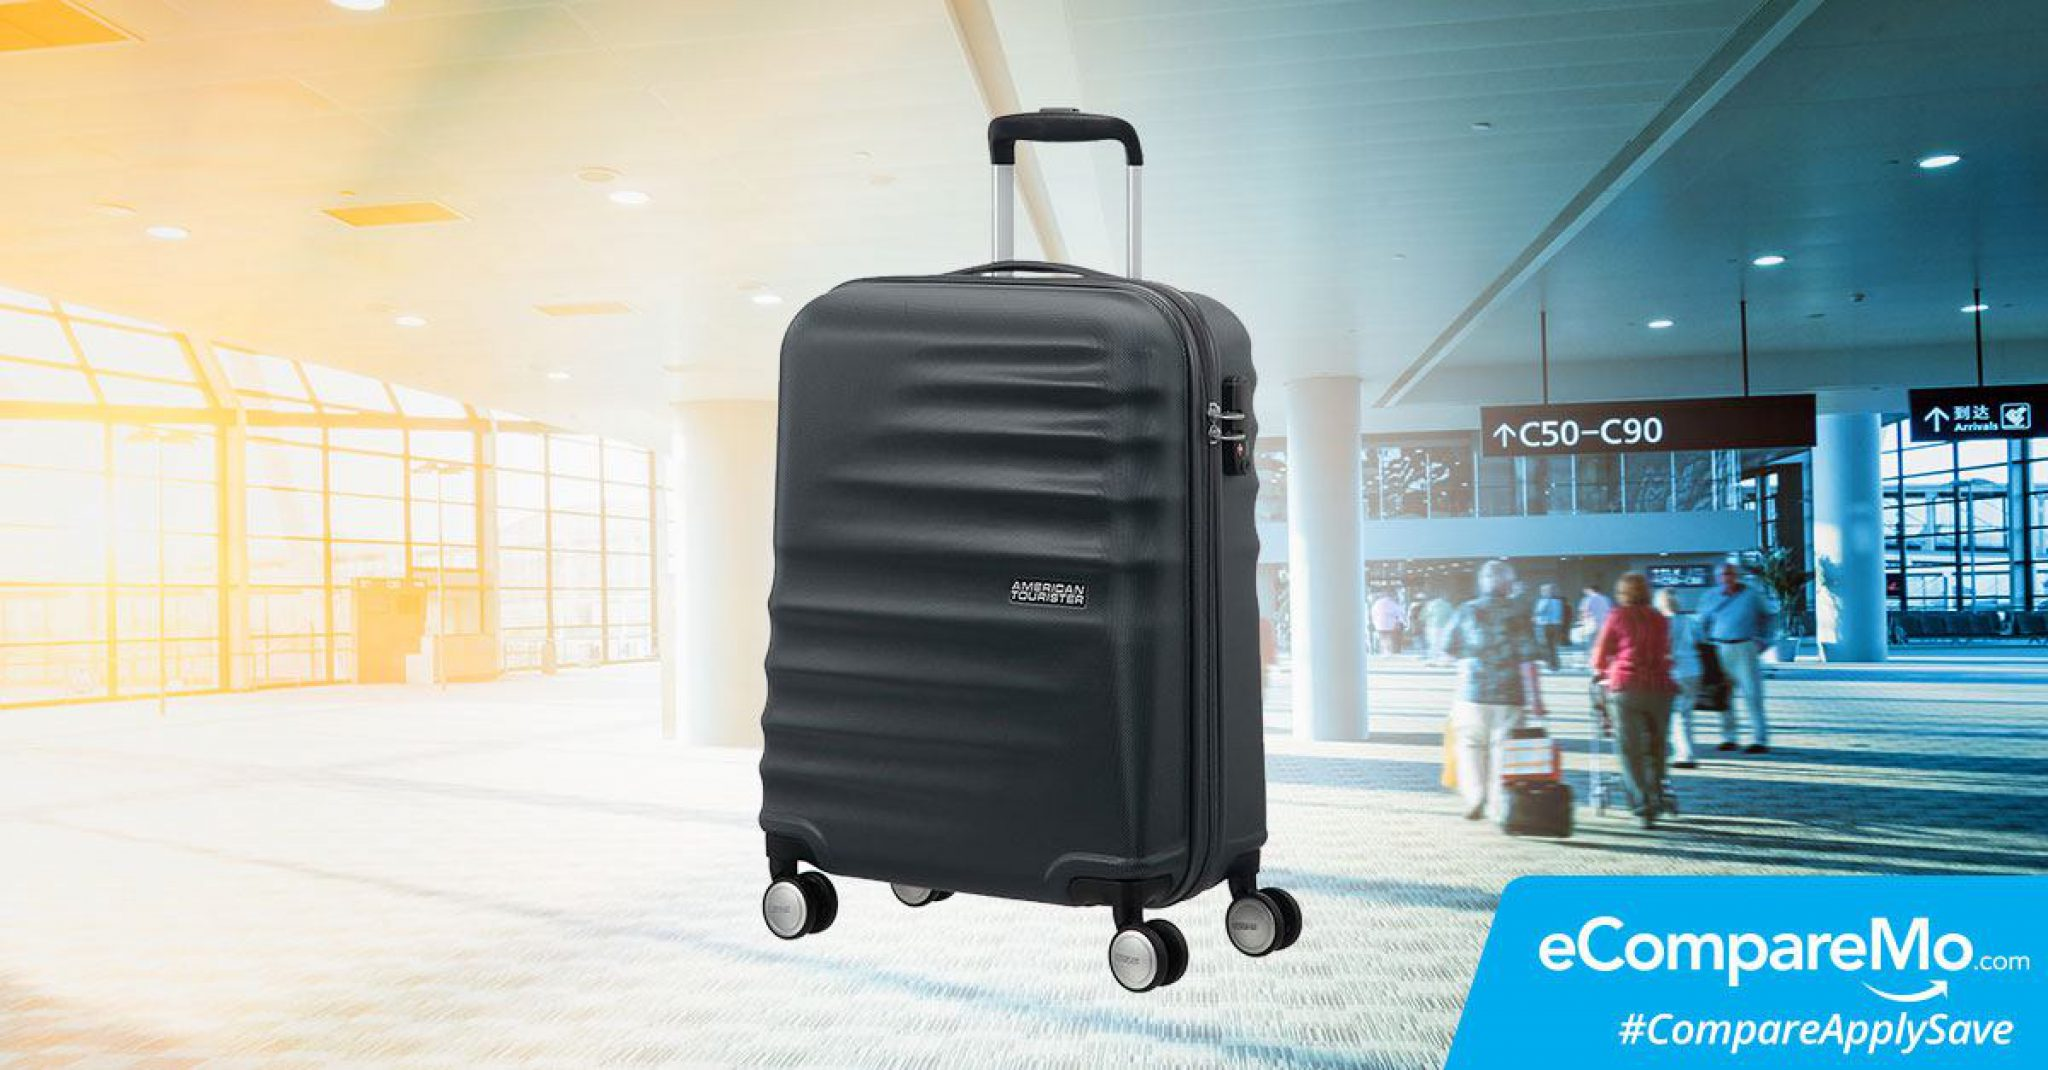 656393886 Get A Free American Tourister Spinner Luggage When You Apply For An HSBC  Credit Card And Spend P5,000 - eCompareMo